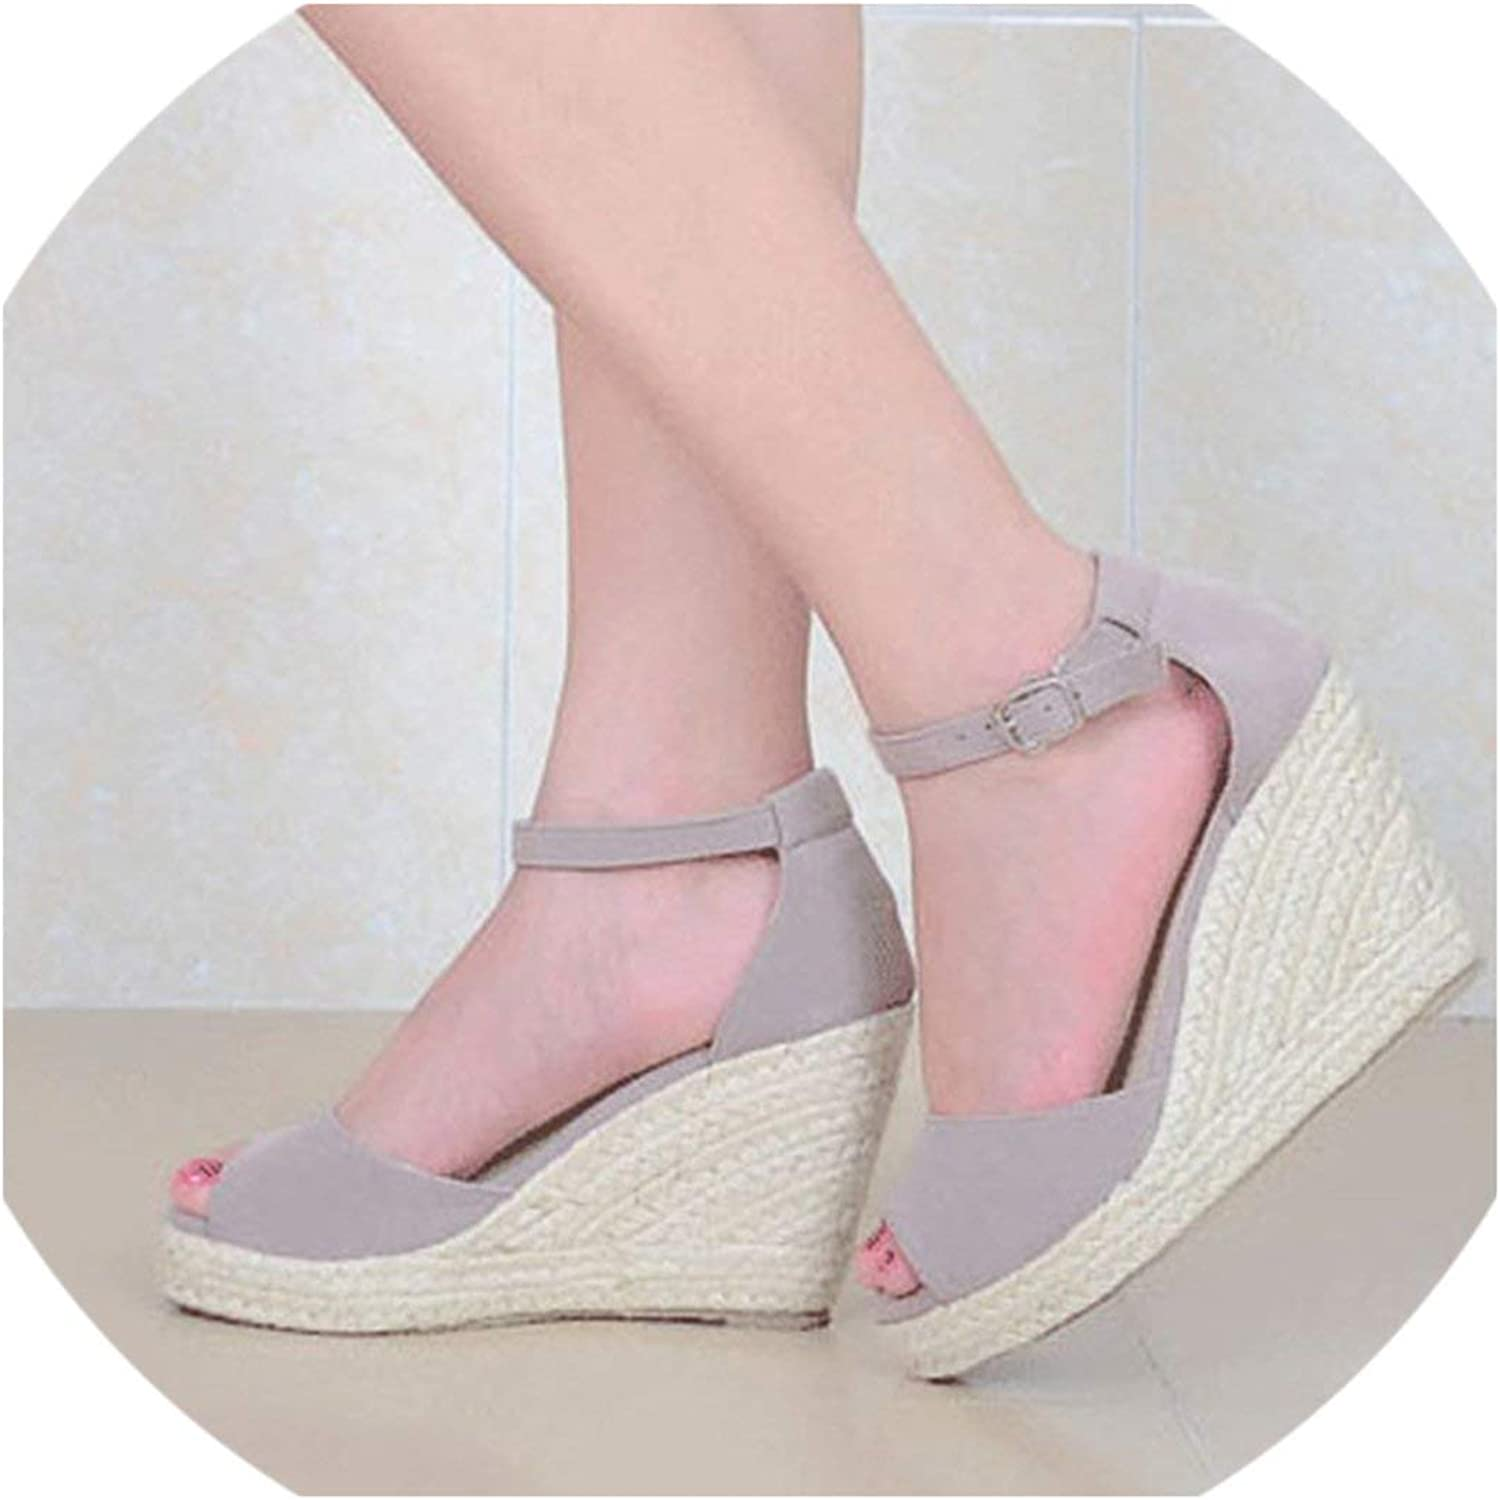 SexyStore-pumps-shoes Bohemian Women Sandals Ankle Straw for Female High Heels Sandal